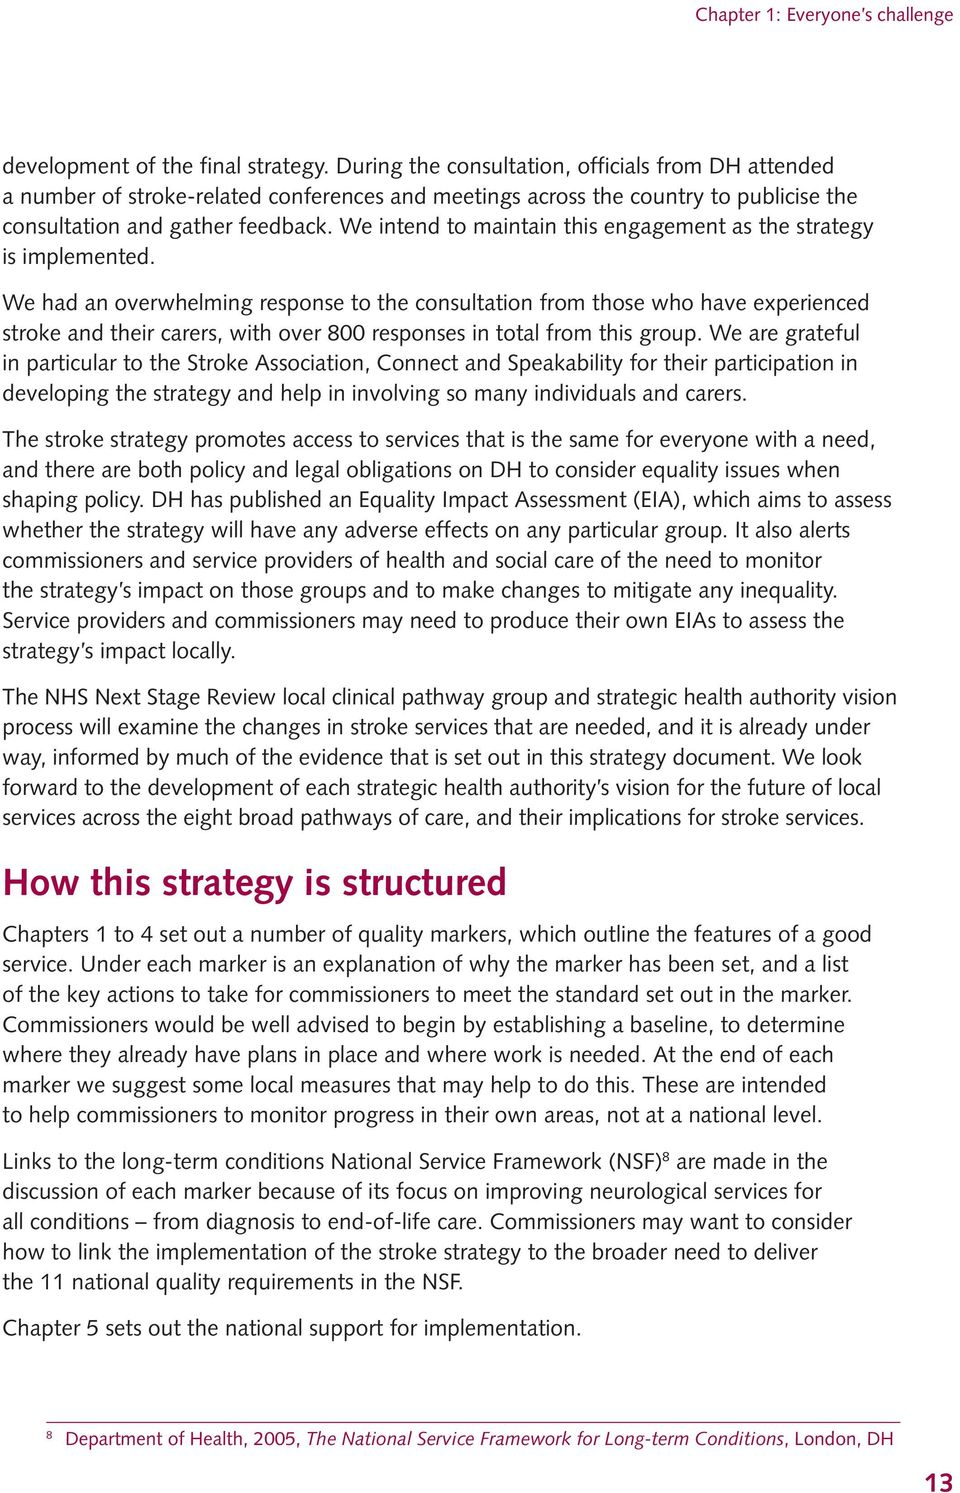 We intend to maintain this engagement as the strategy is implemented.